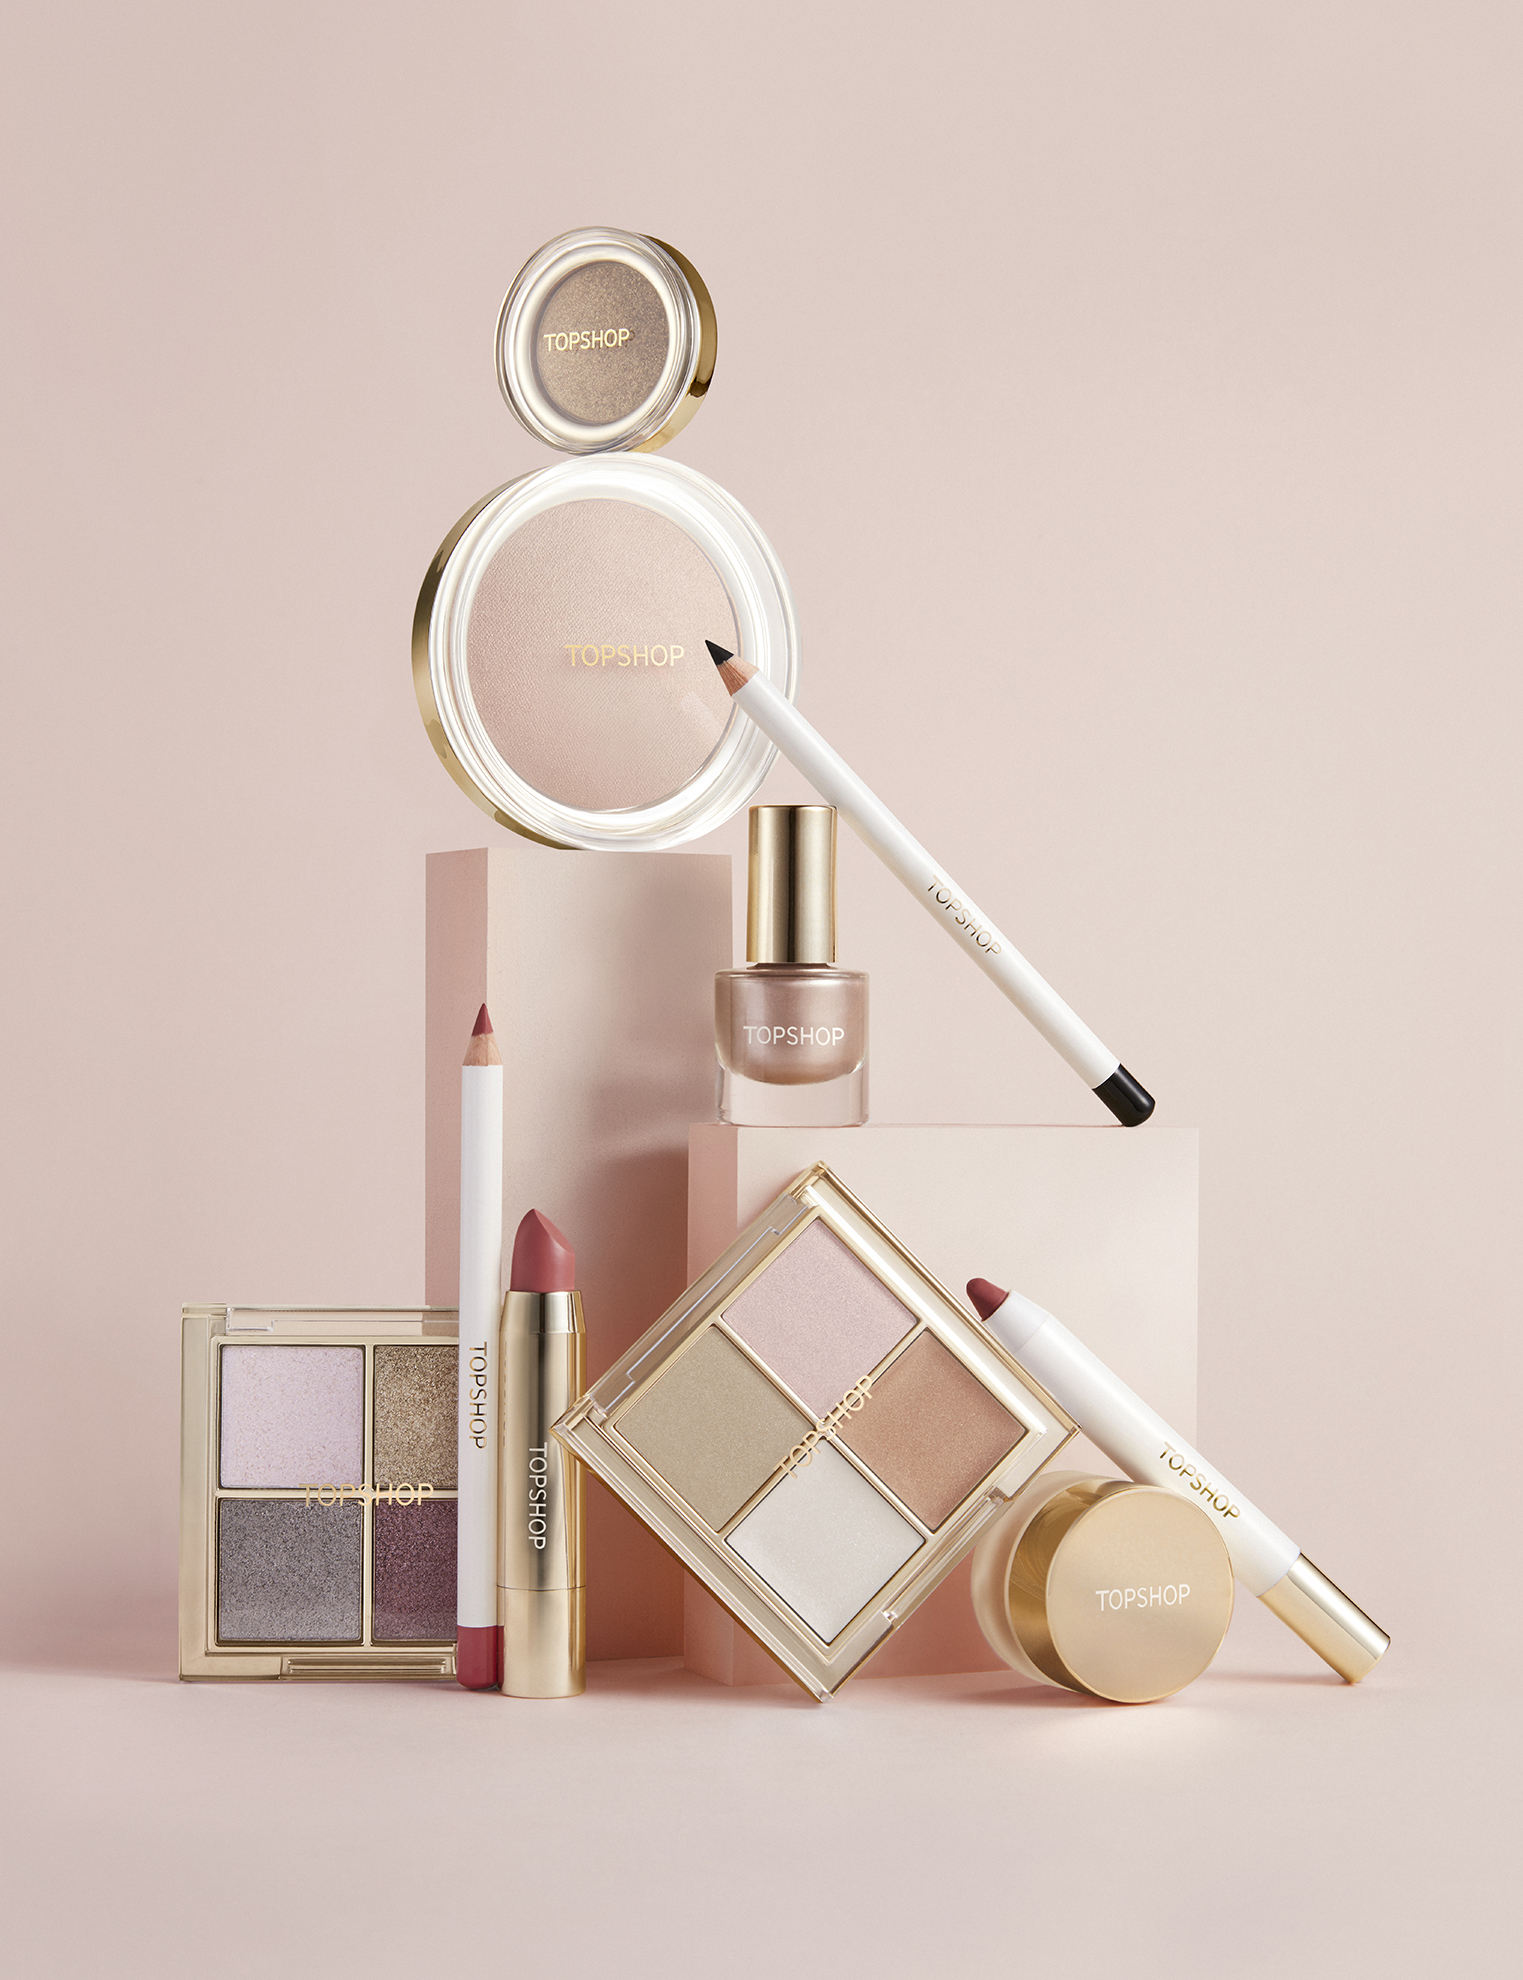 topshop-still-life-photographer-london-make-up-beauty-cosmetics-product-photography-1.jpg